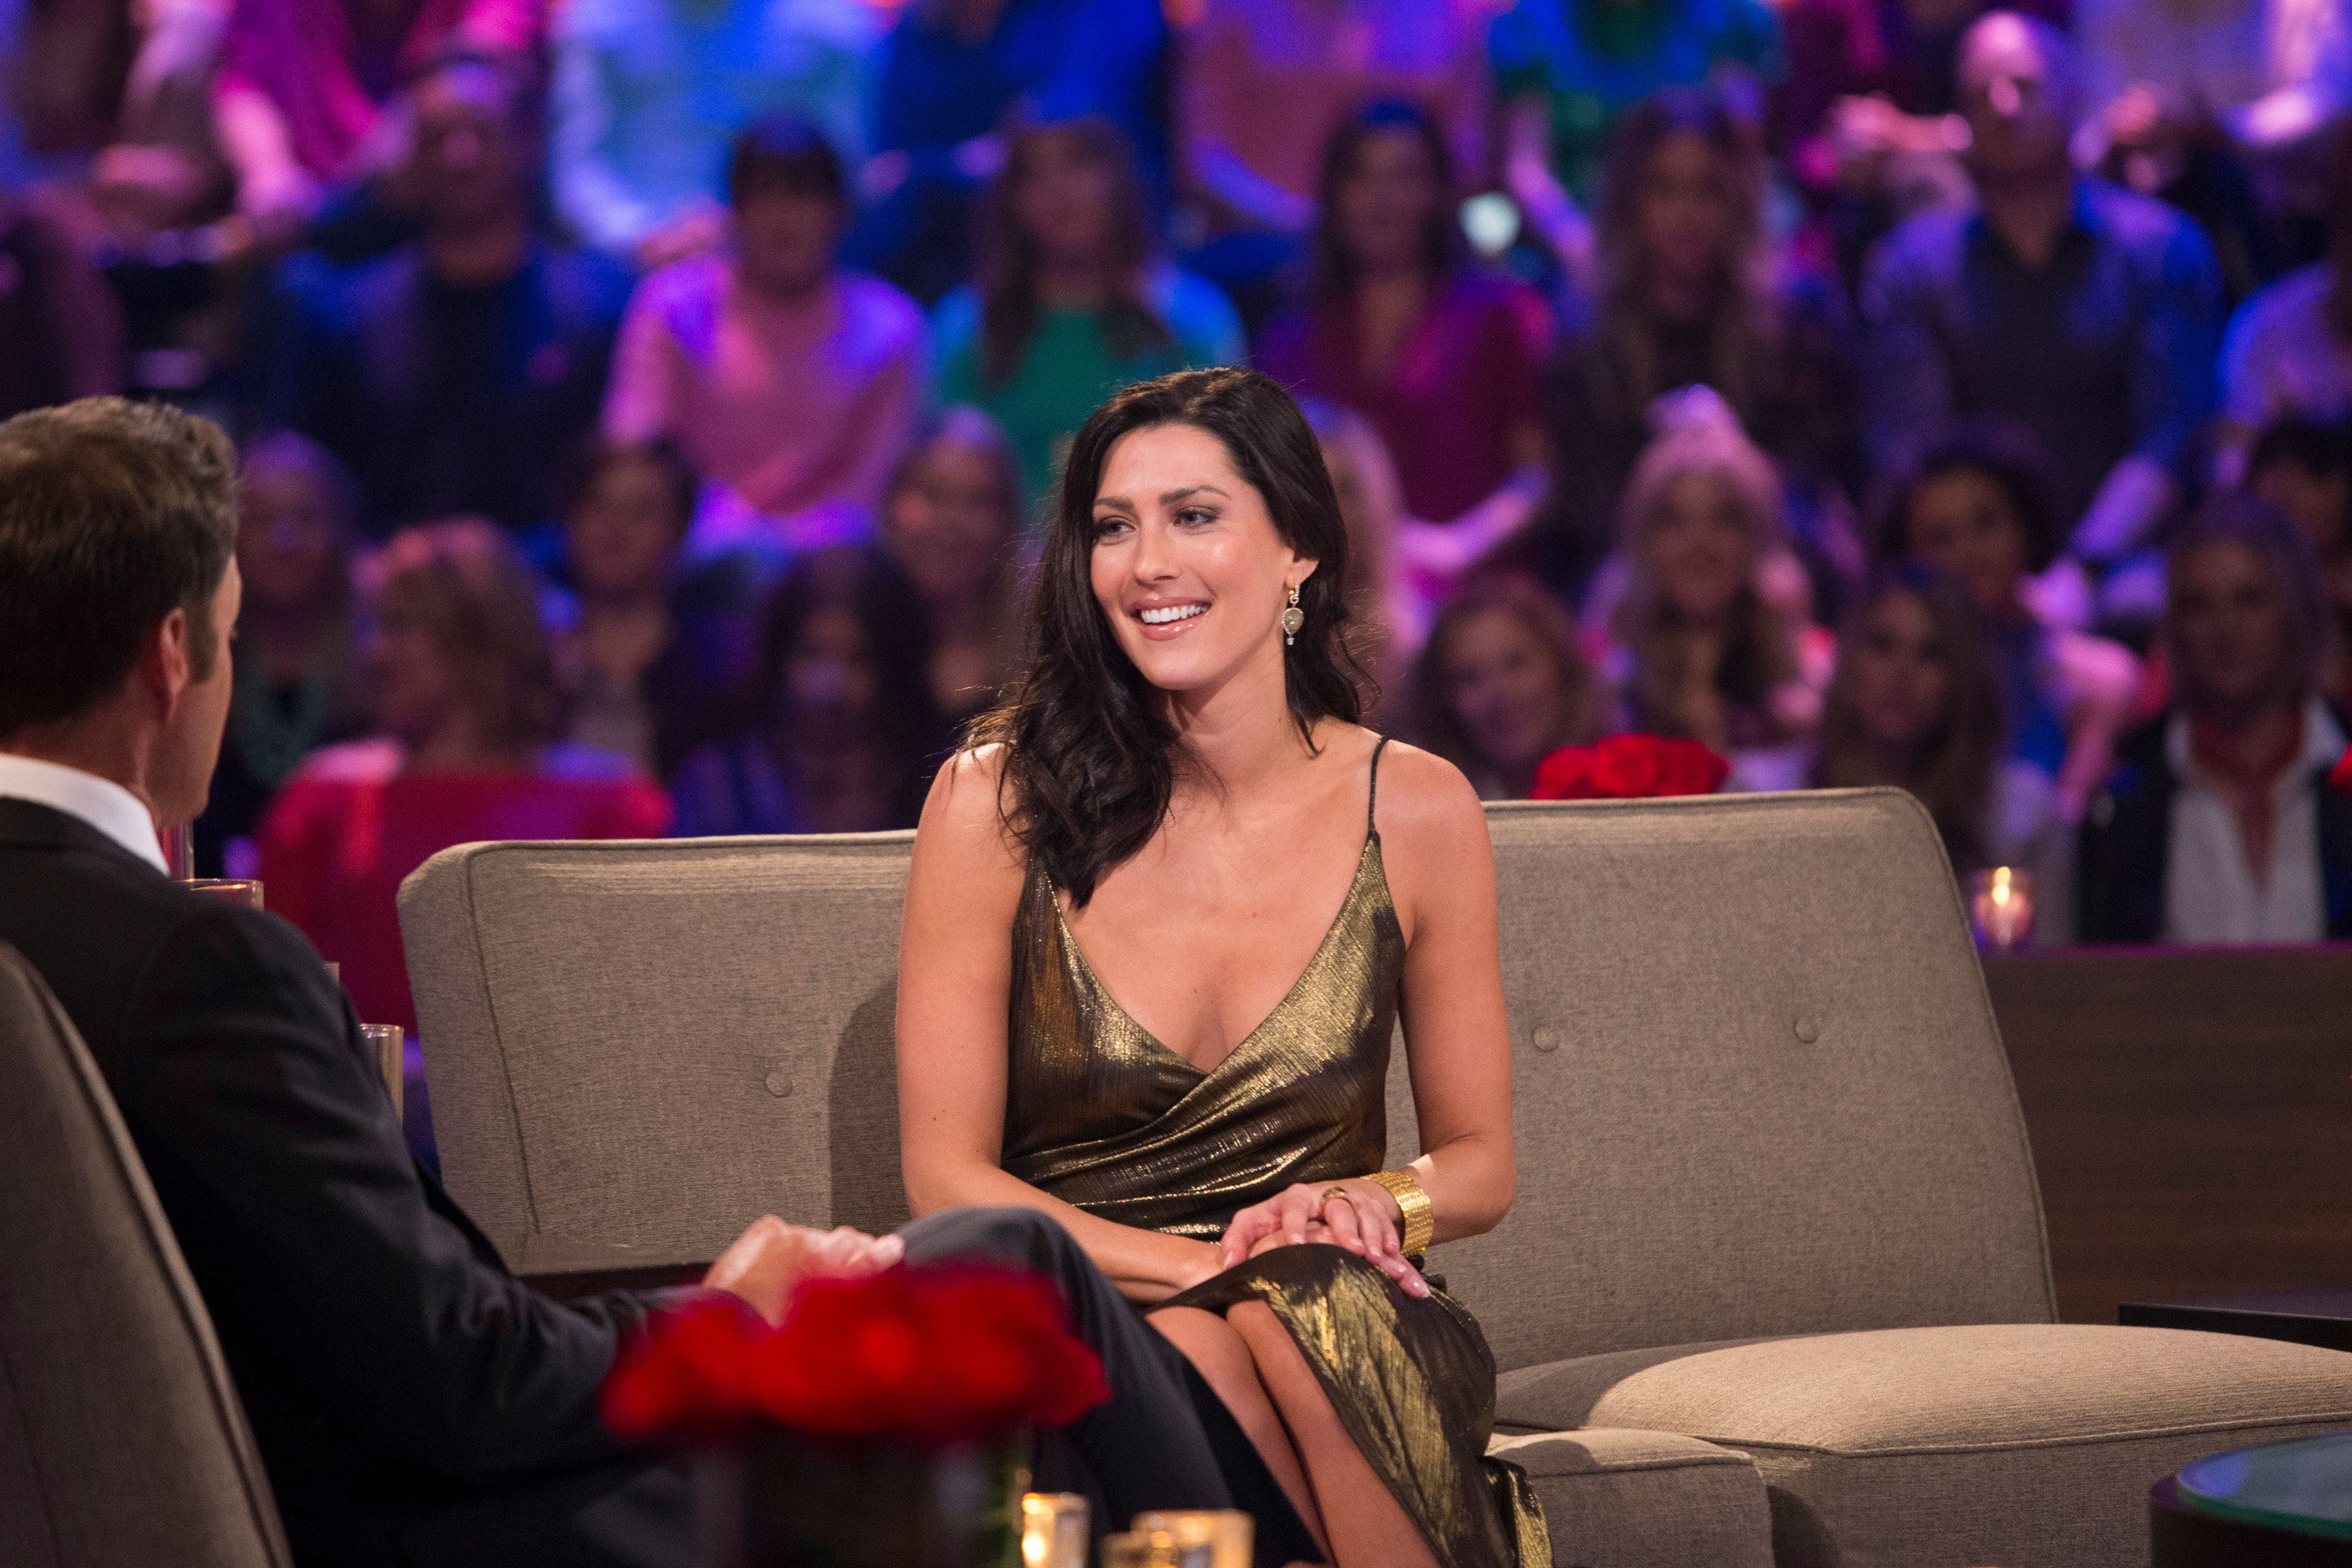 THE BACHELOR - 'The Bachelor: After the Final Rose' - Arie's soul-searching journey continues after America followed the chaos of his being in love with two women, which played out in gut-wrenching fashion, on 'The Bachelor: After the Final Rose,' a two-hour live special, TUESDAY, MARCH 6 (8:00-10:01 p.m. EST), on The ABC Television Network. (Paul Hebert/ABC via Getty Images) CHRIS HARRISON, BECCA KUFRIN